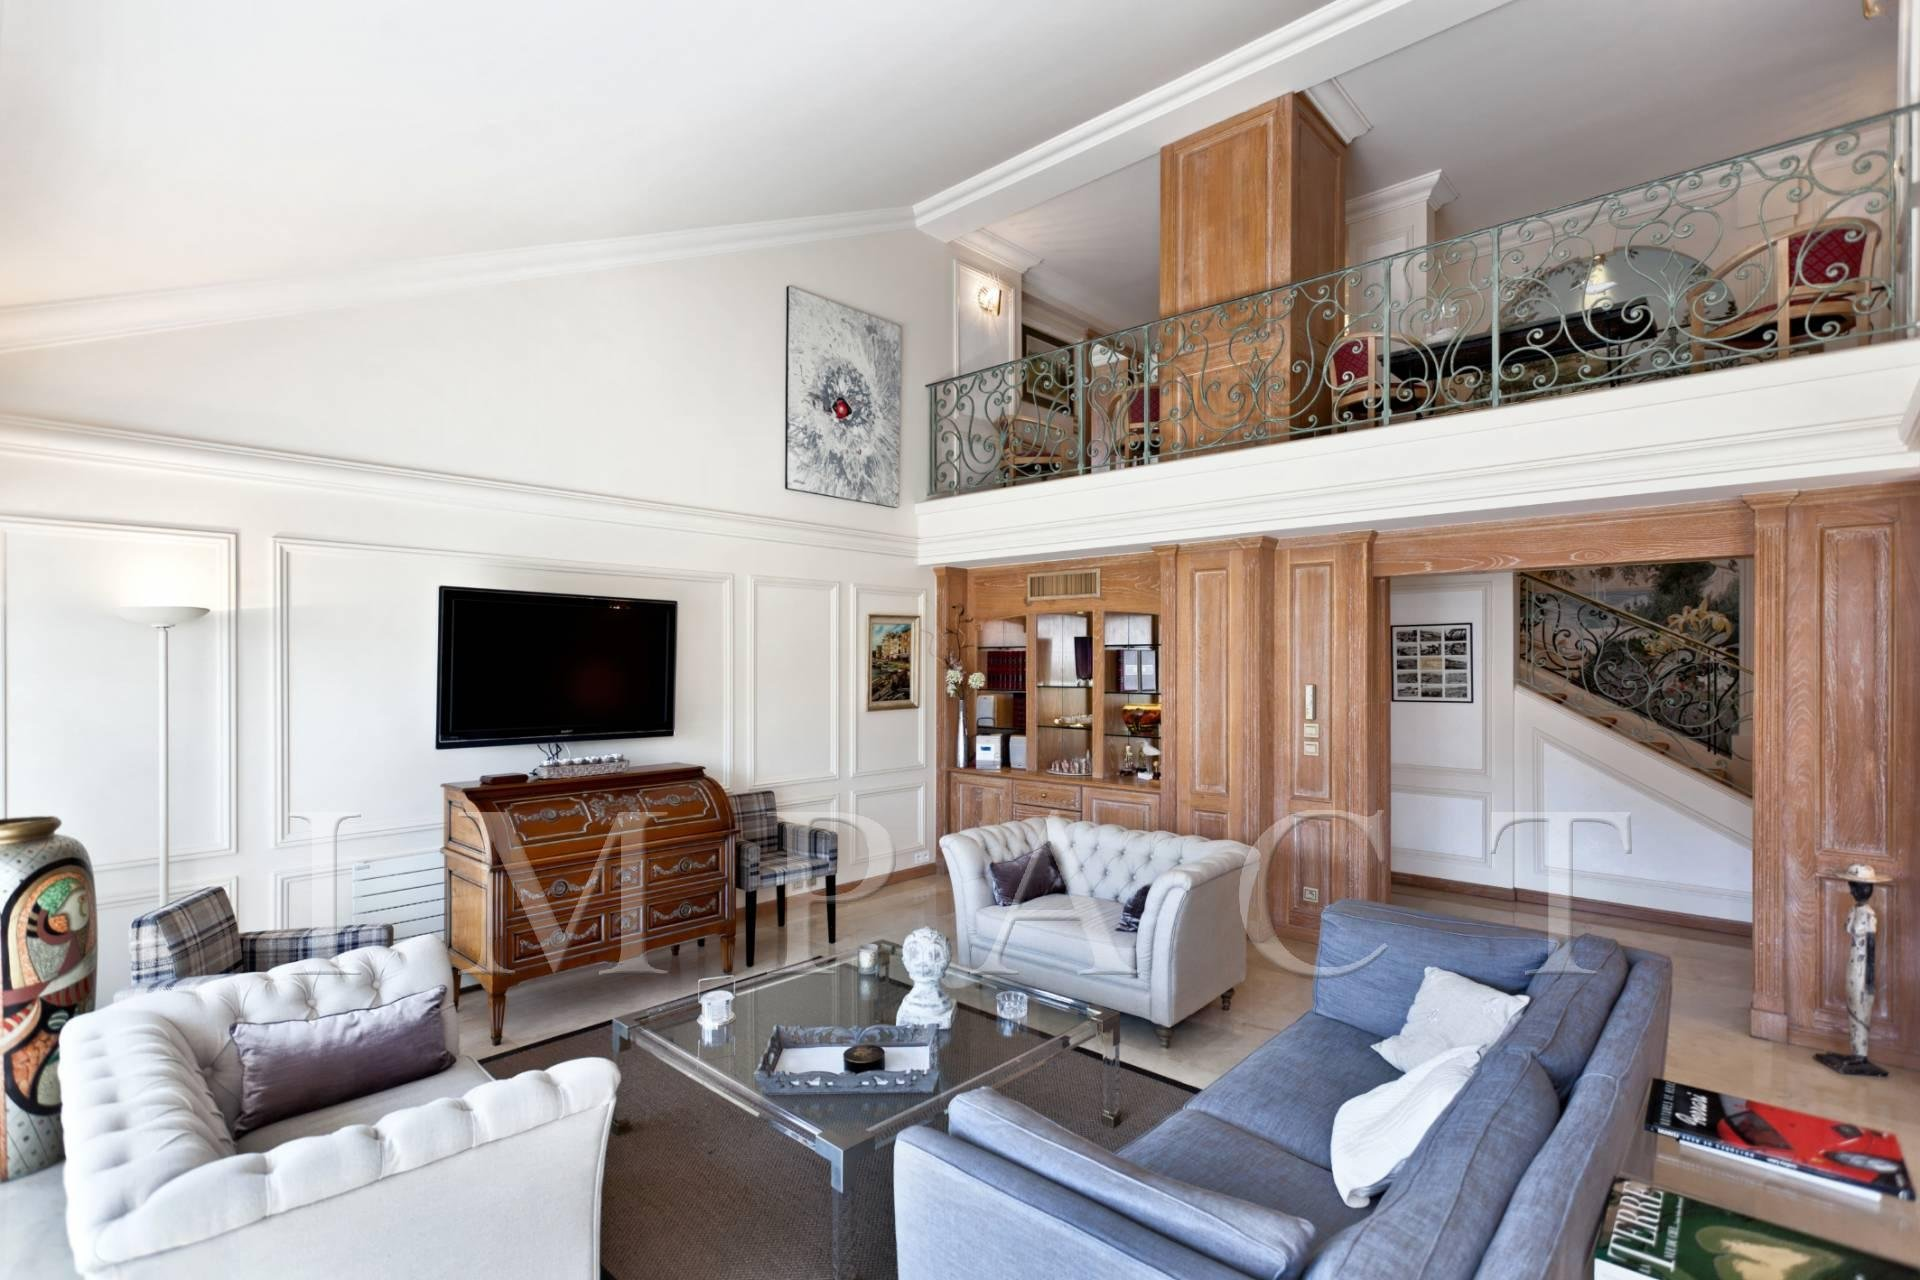 Penthouse Duplex to rent in Cannes